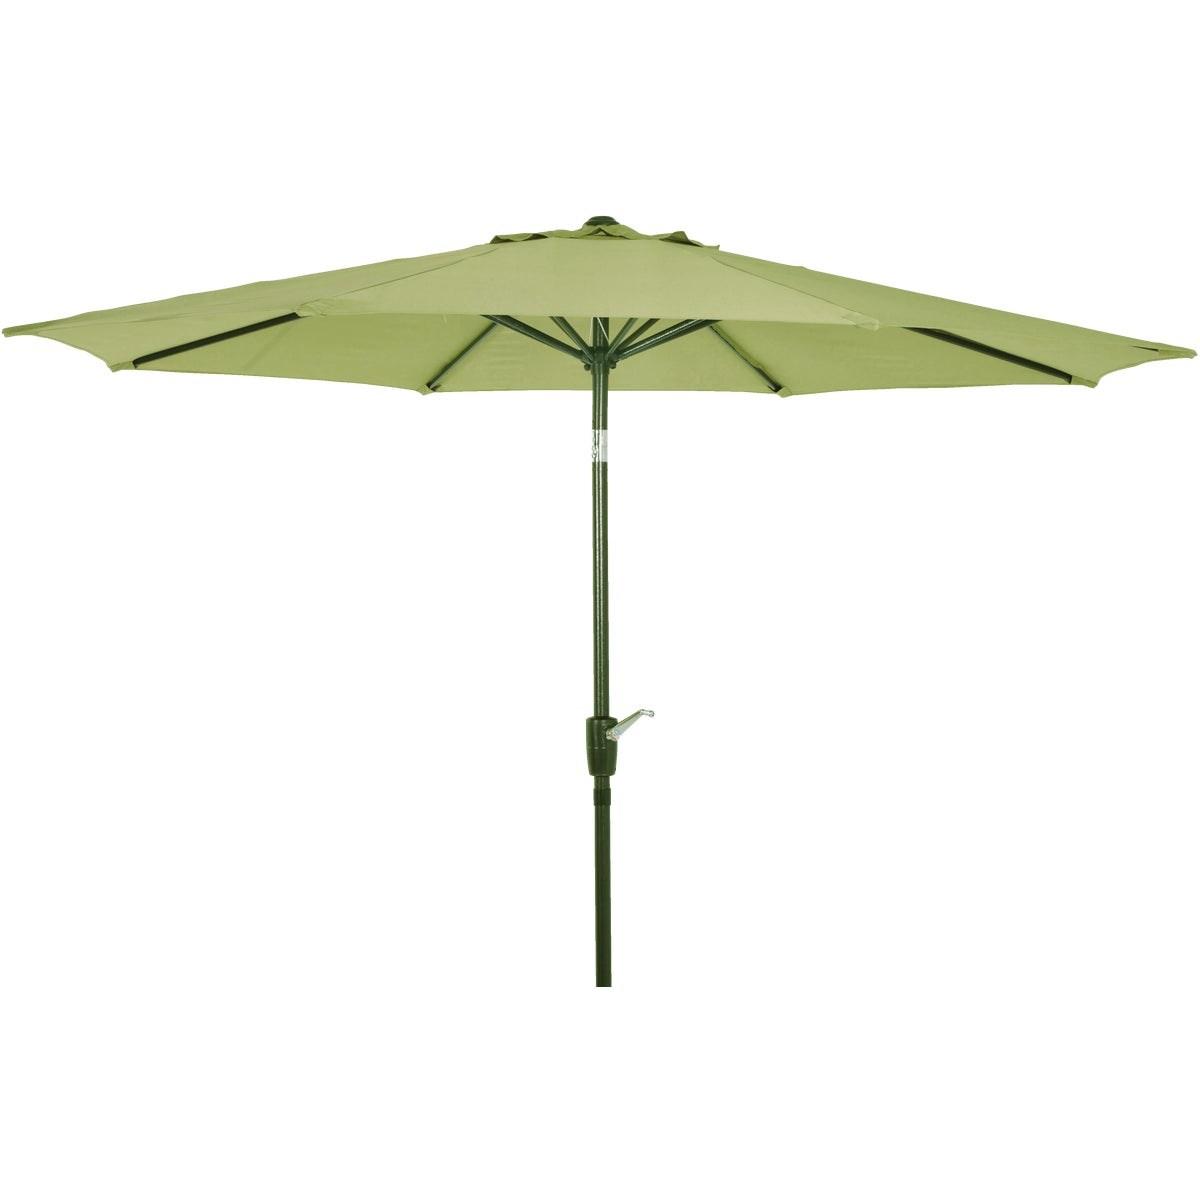 9' SAGE ALUM UMBRELLA - TJAU-004A-270-SGE by Do it Best